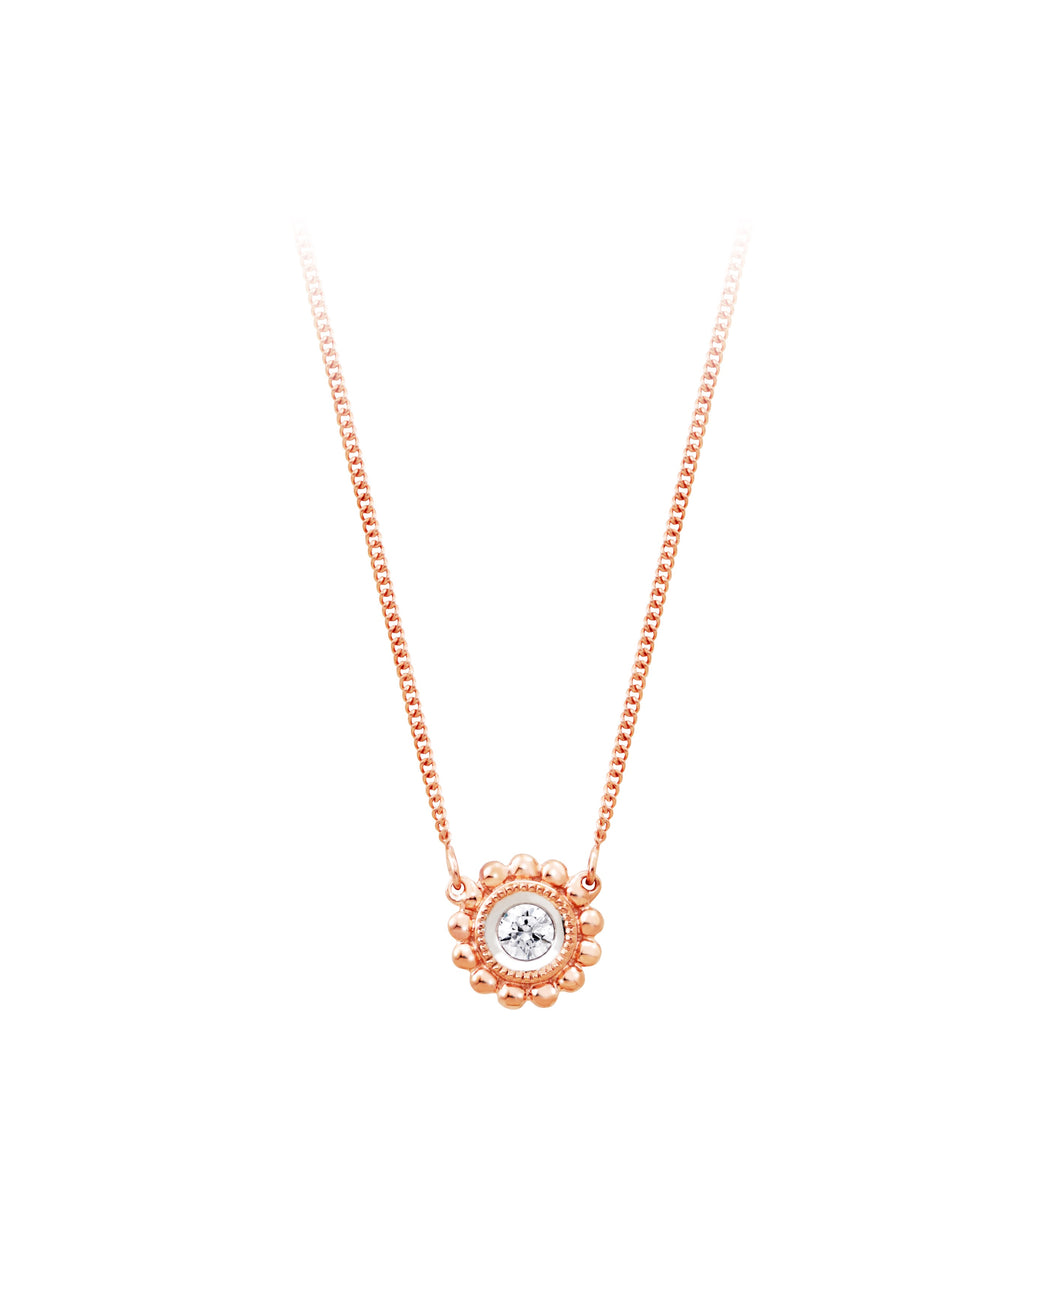 10k Rose Gold  Diamond Beaded Neacklace